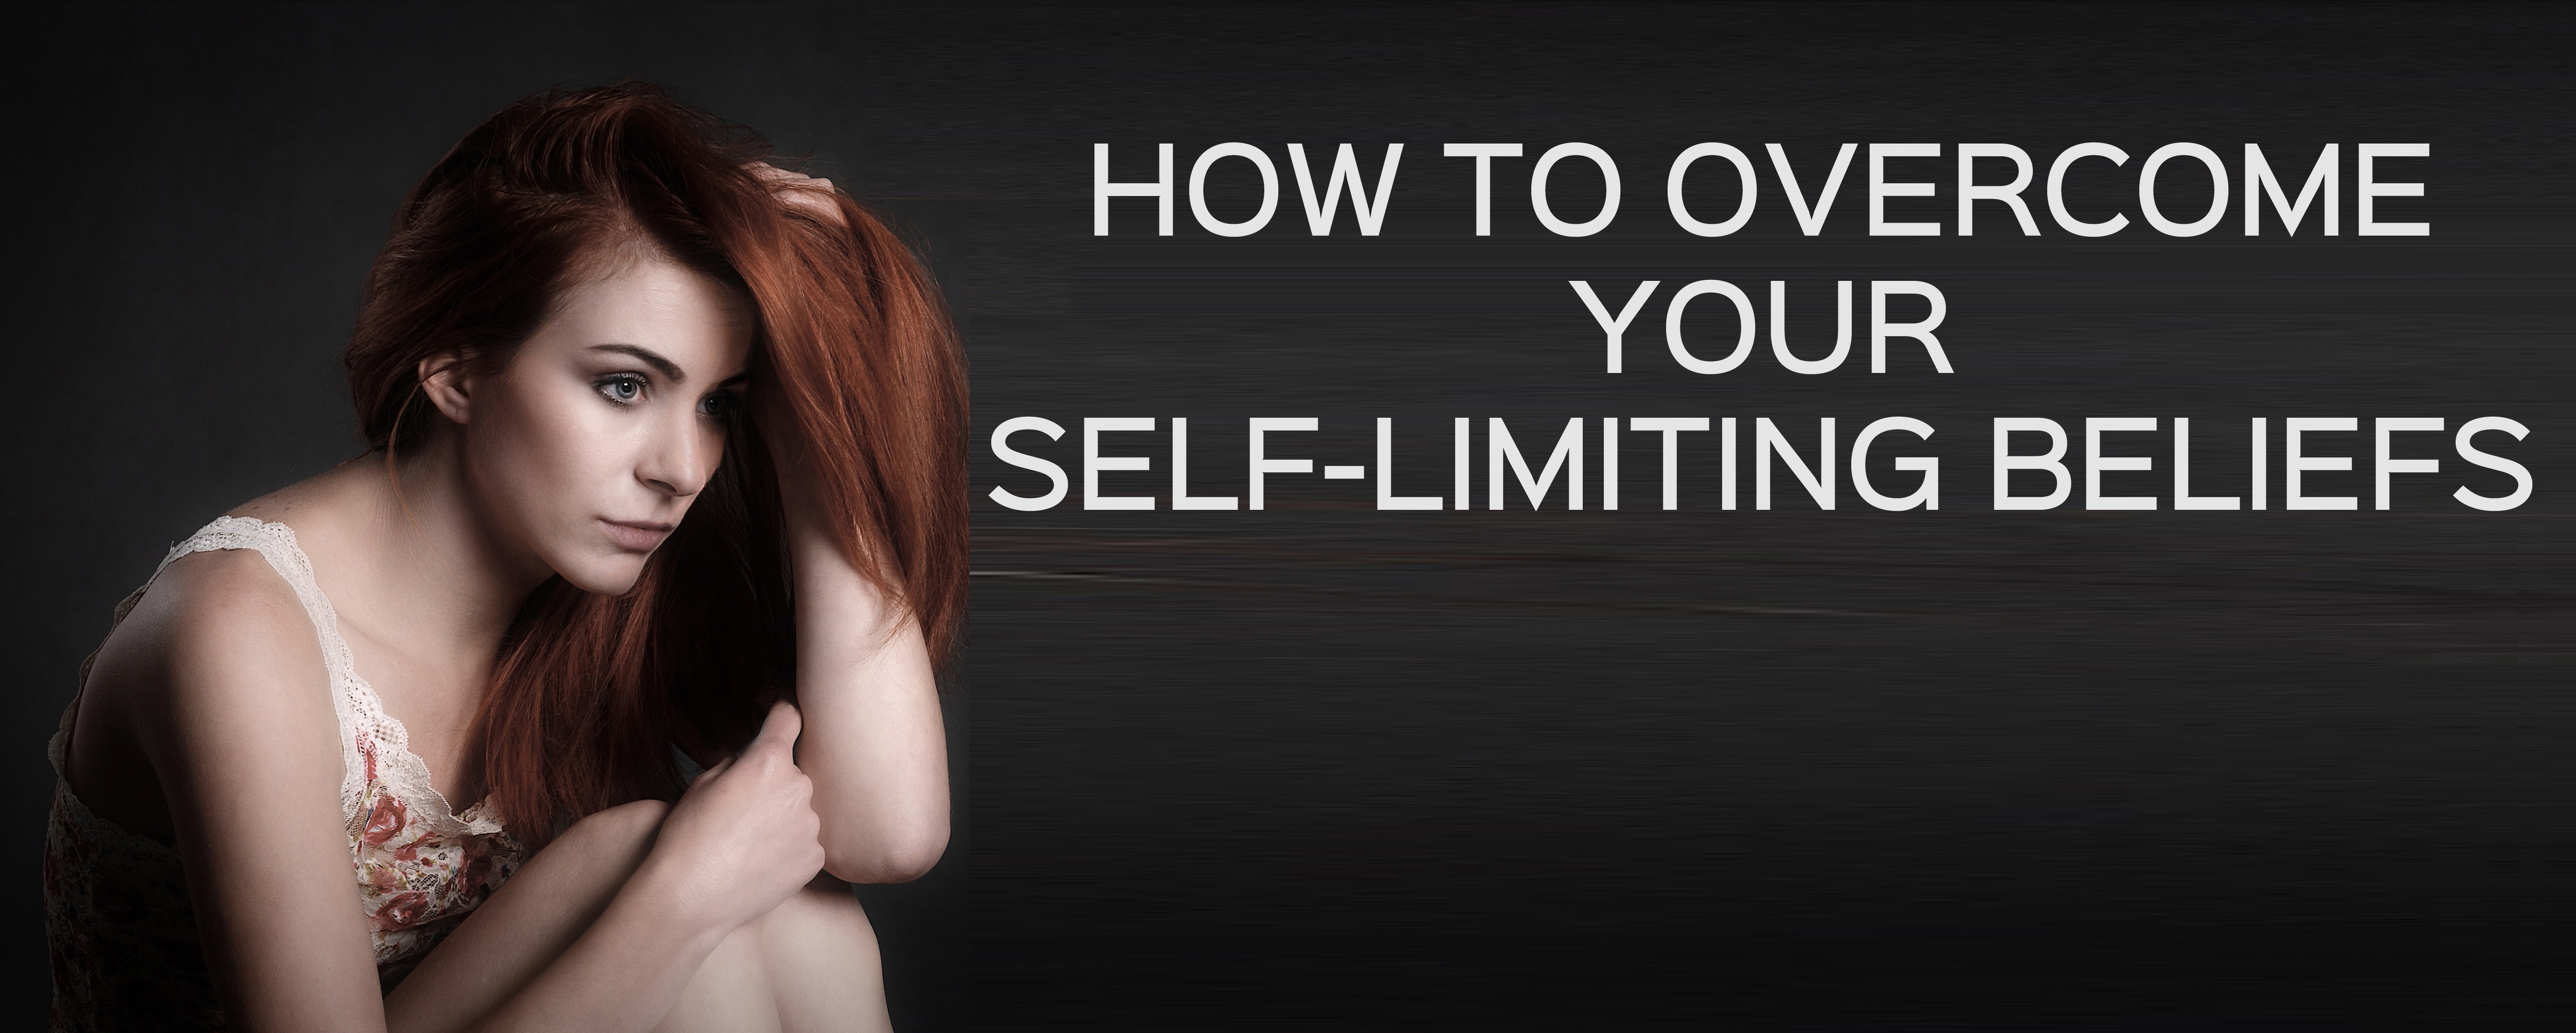 How to overcome your self- limiting beliefs